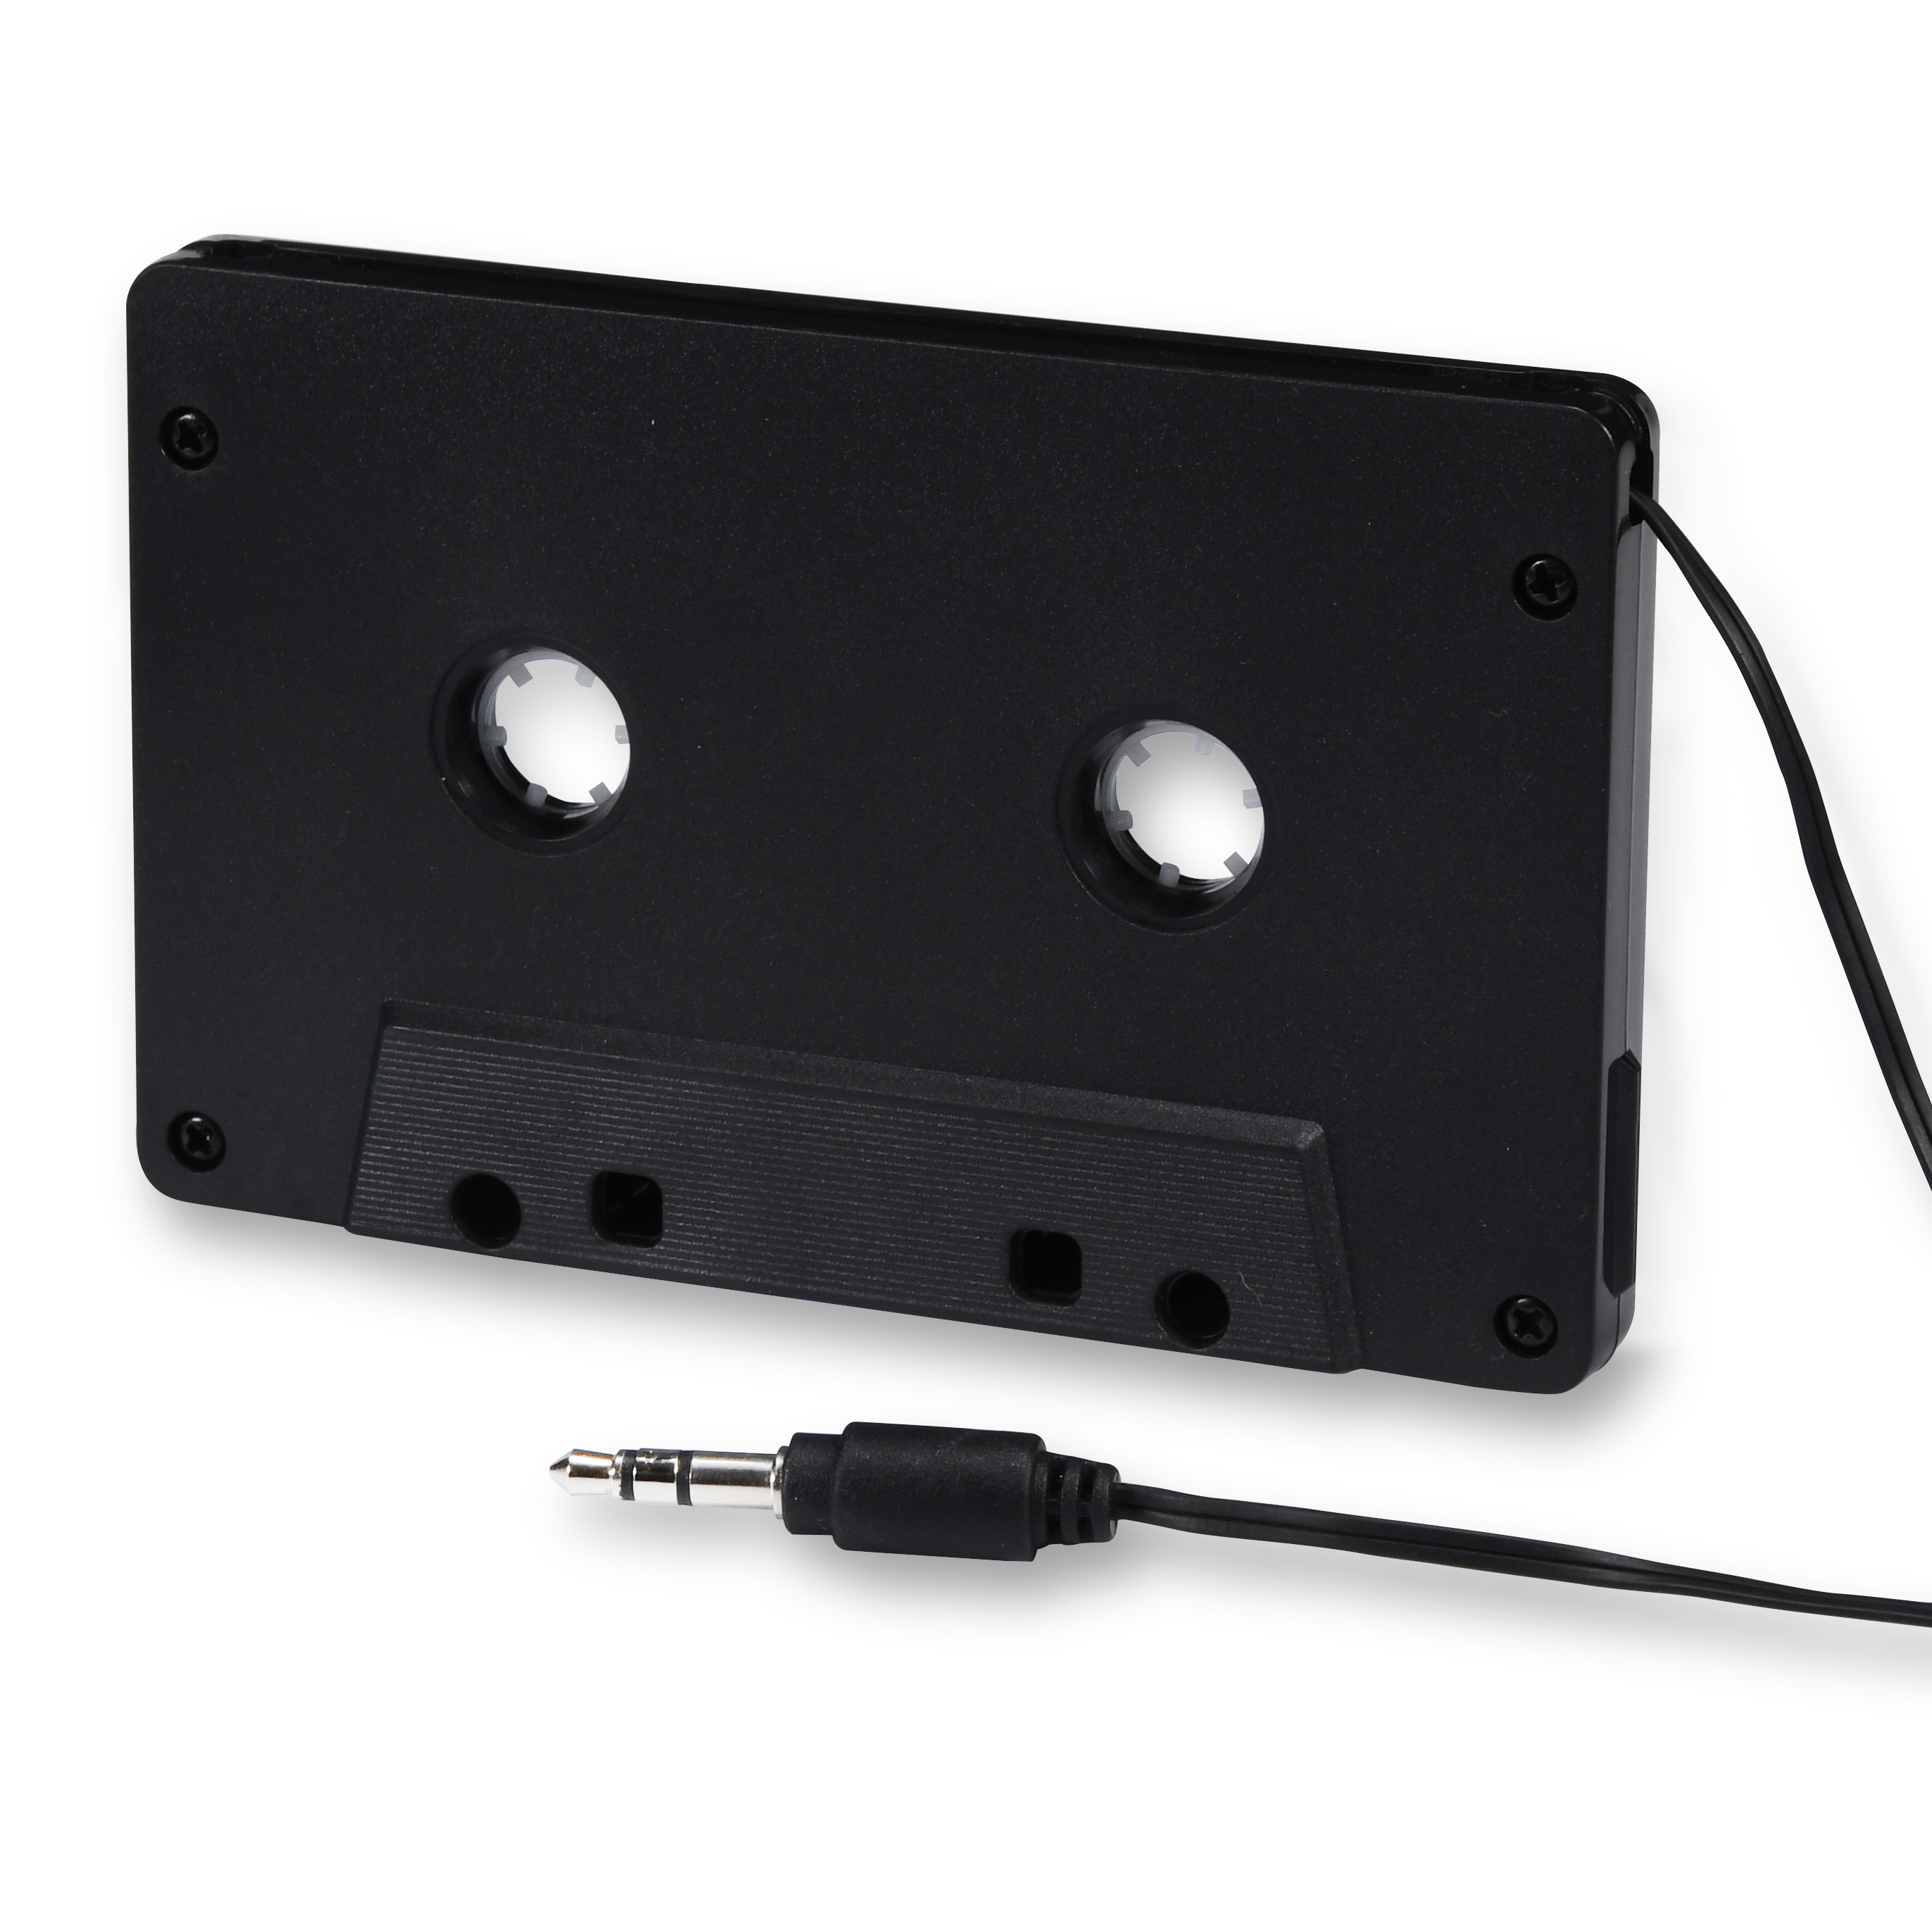 Onn Cassette Adapter - Turn Any Tapedeck Stereo System Into a Digital Media Player